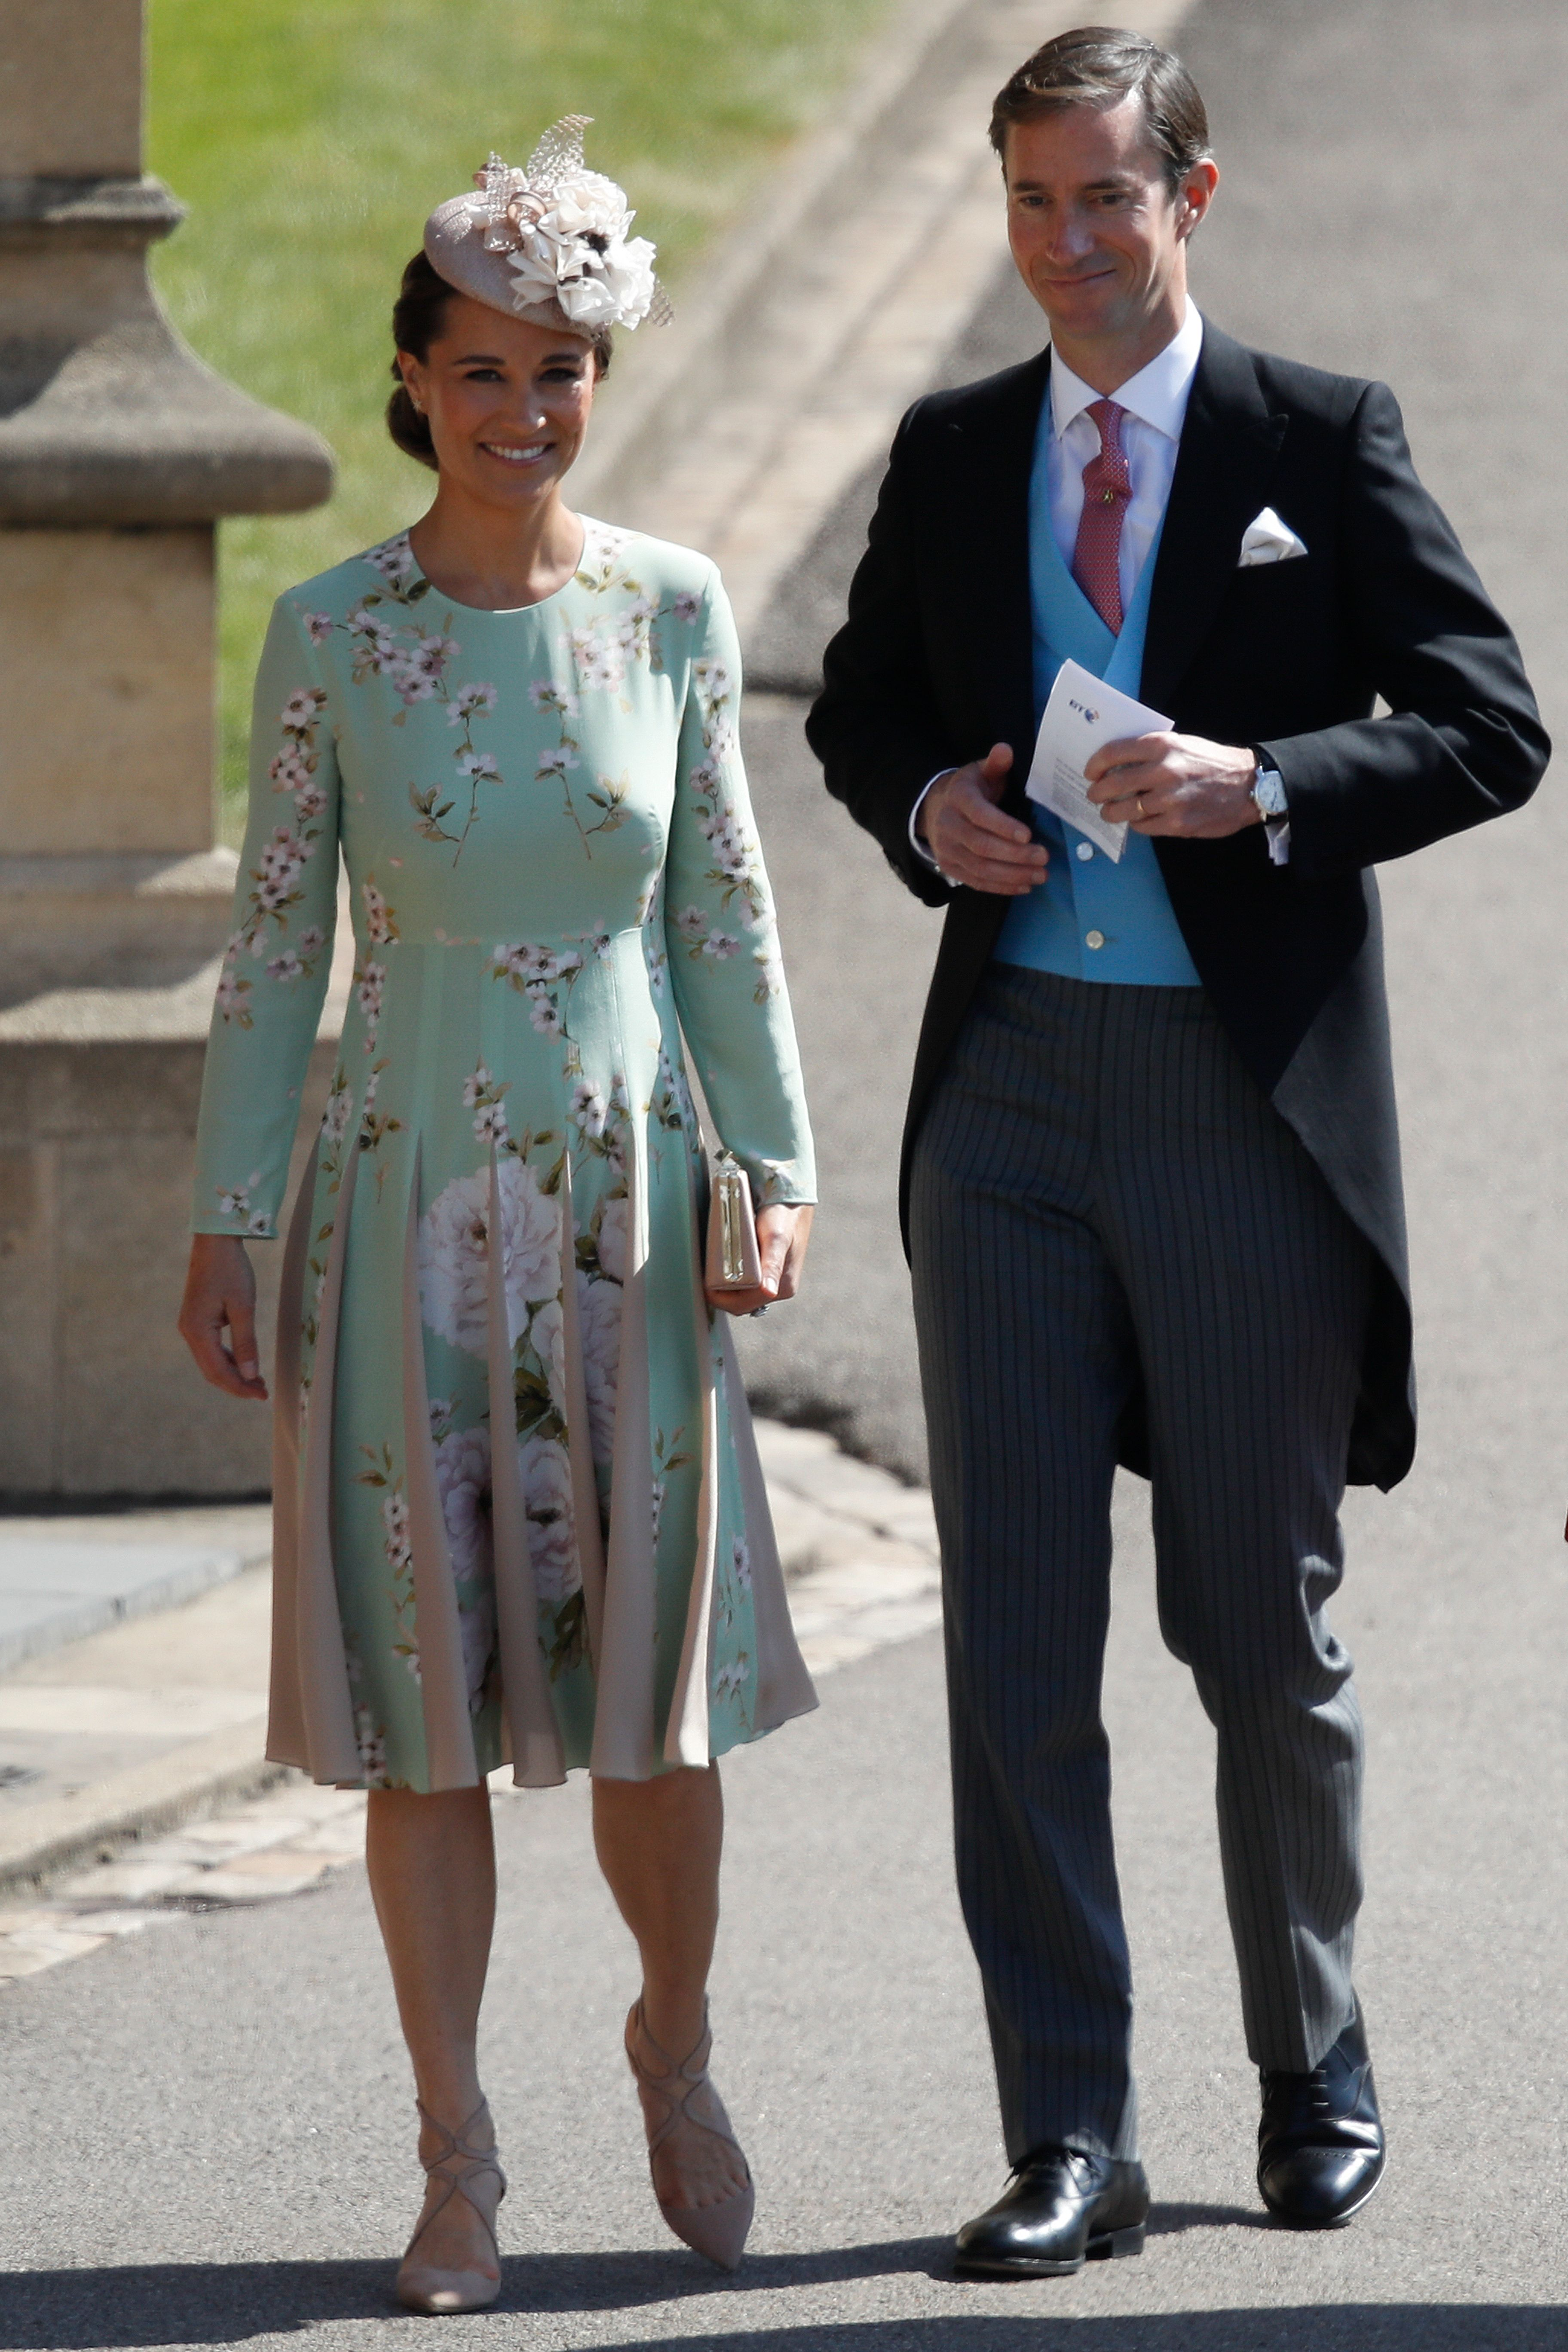 Pippa Middleton and James Matthews at Royal Wedding 2018